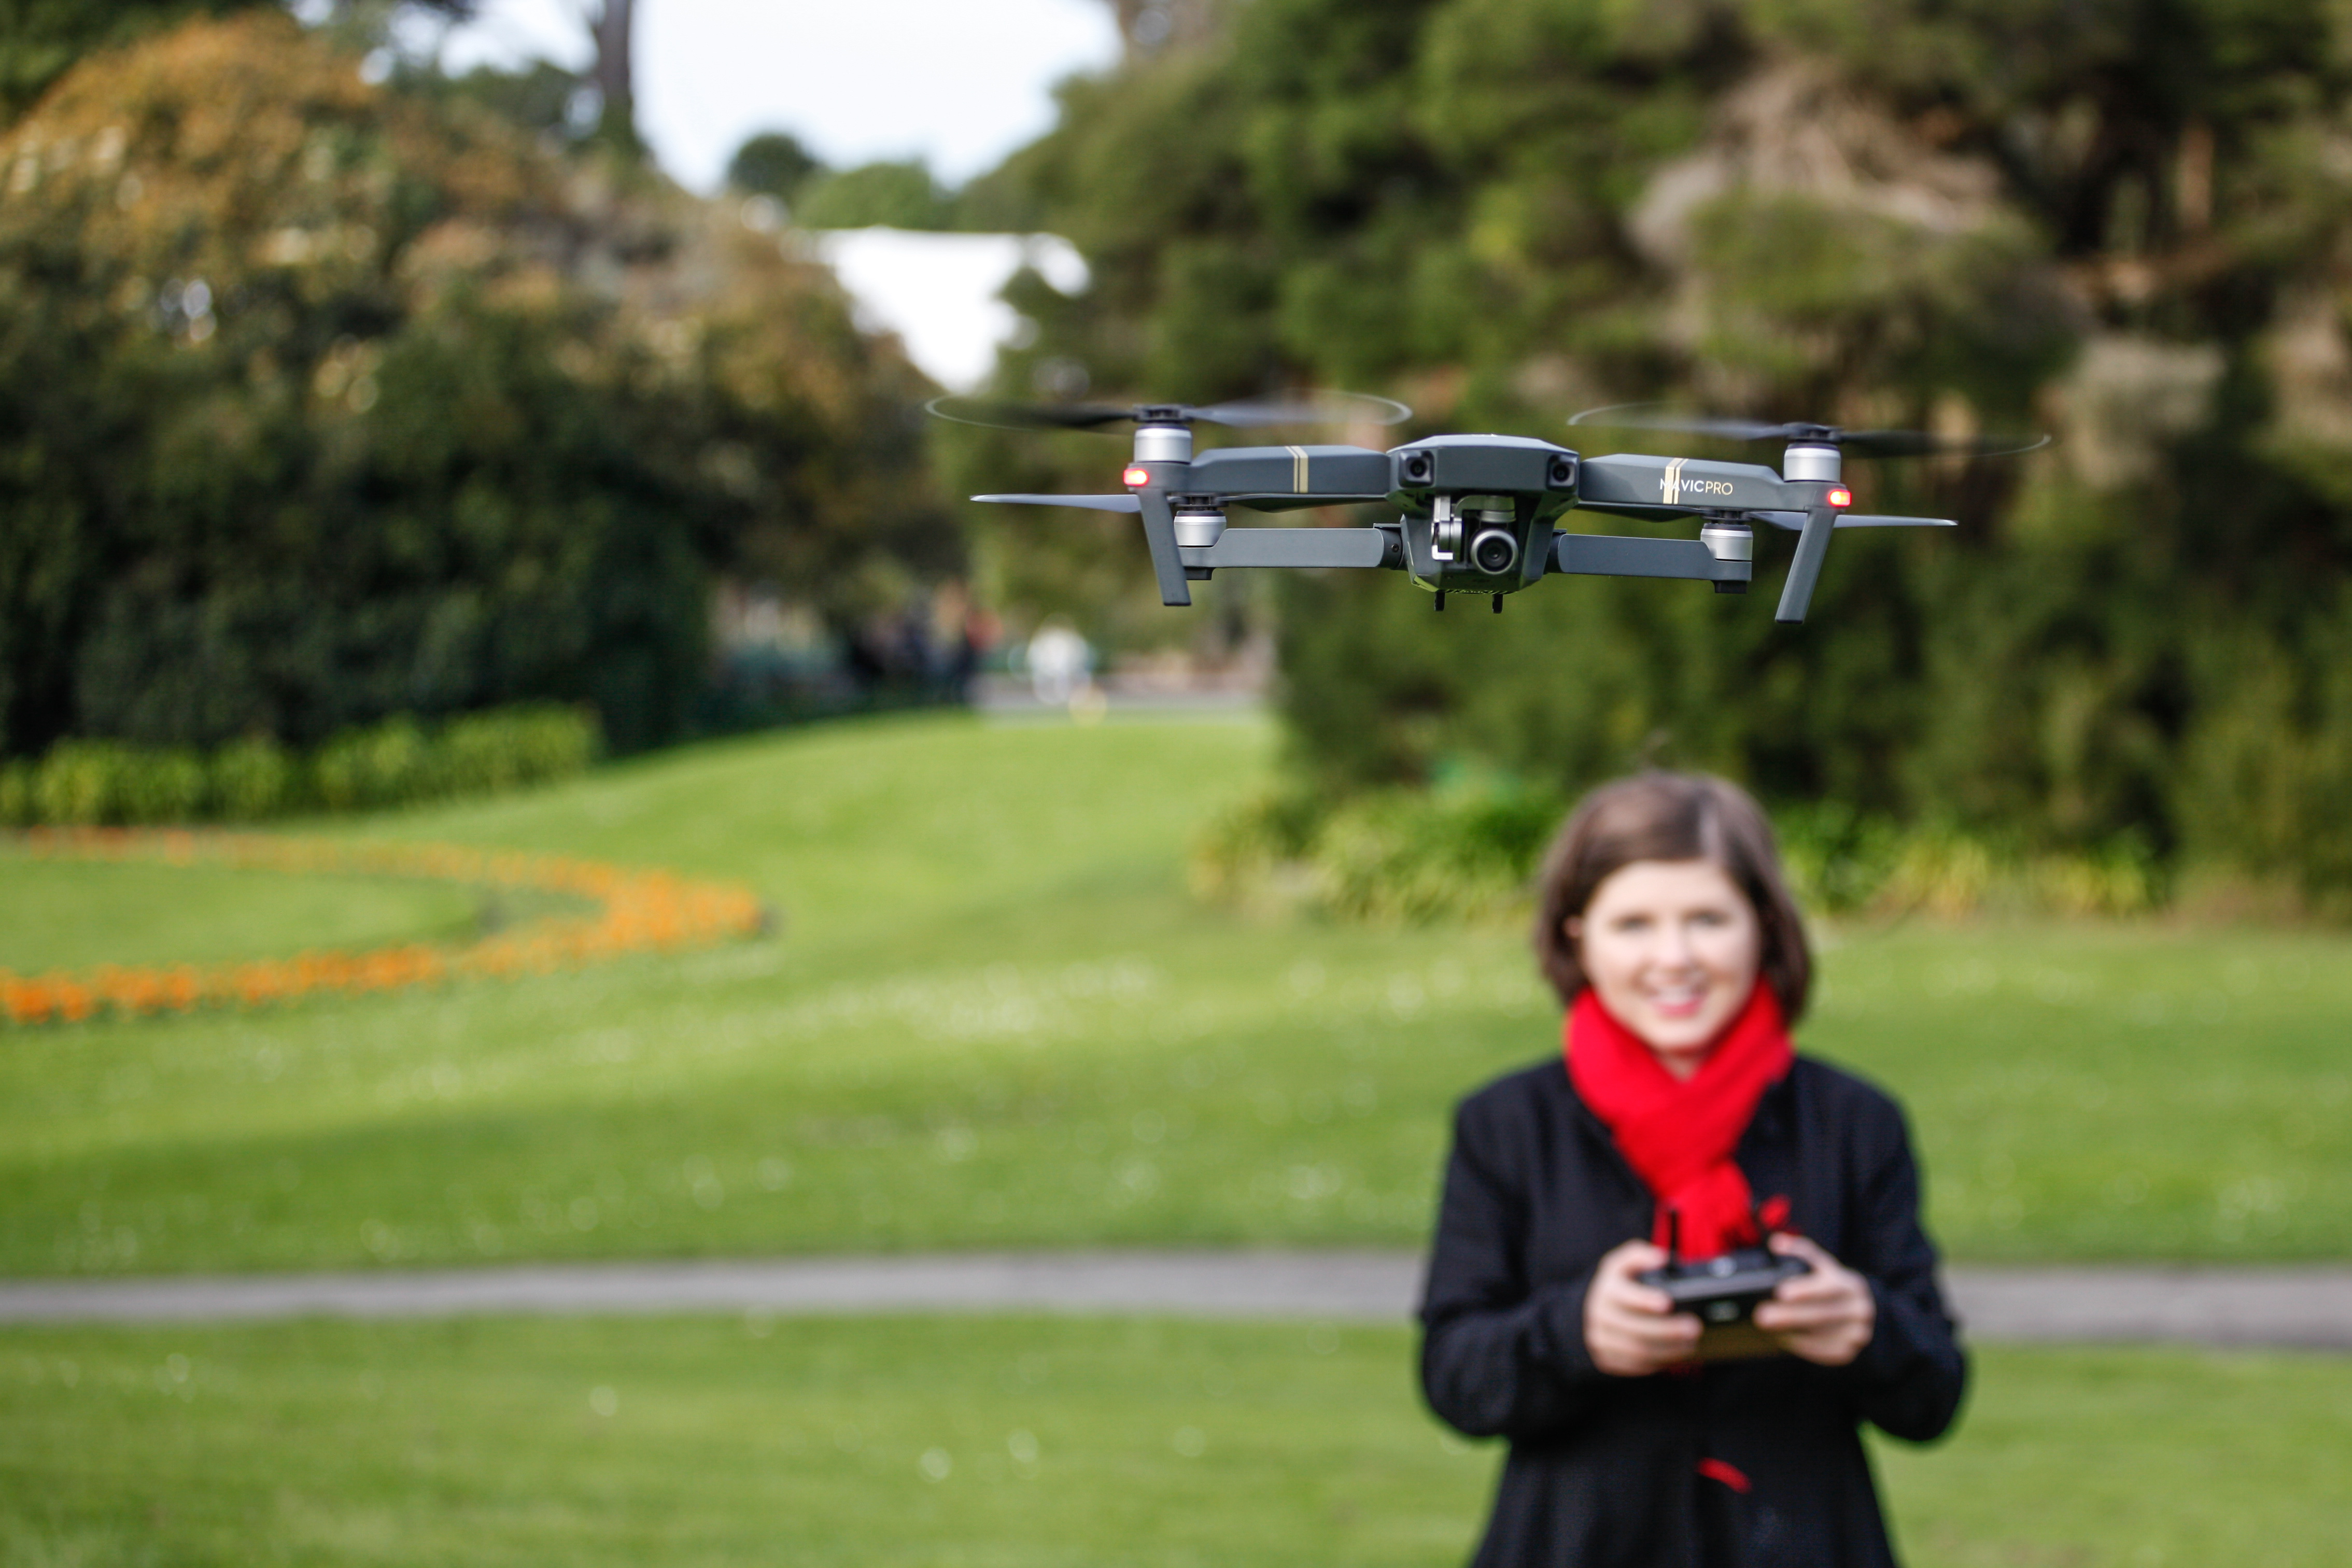 Will we see drones manufactured in the U.S.?